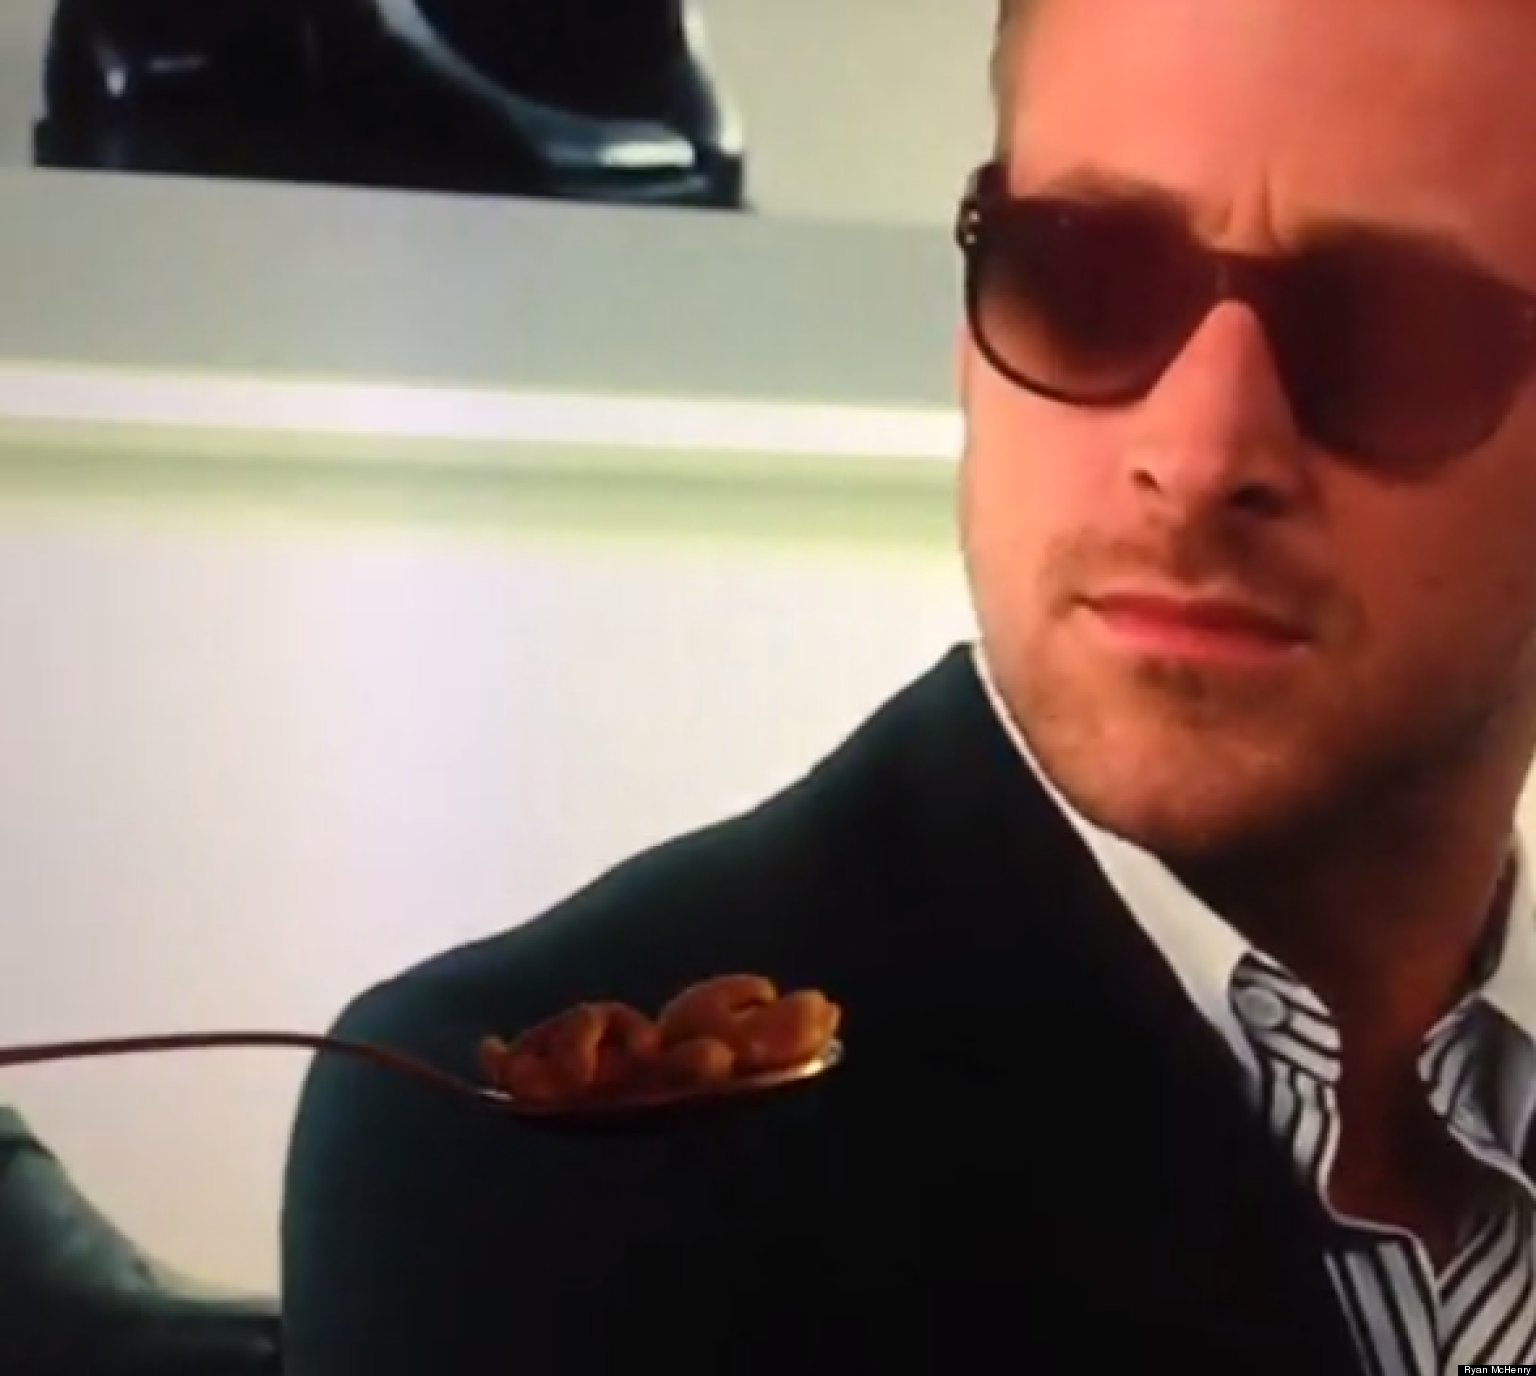 Ryan gosling wont eat his cereal meme is just too good videos ryan gosling wont eat his cereal meme is just too good videos vine huffpost ccuart Images